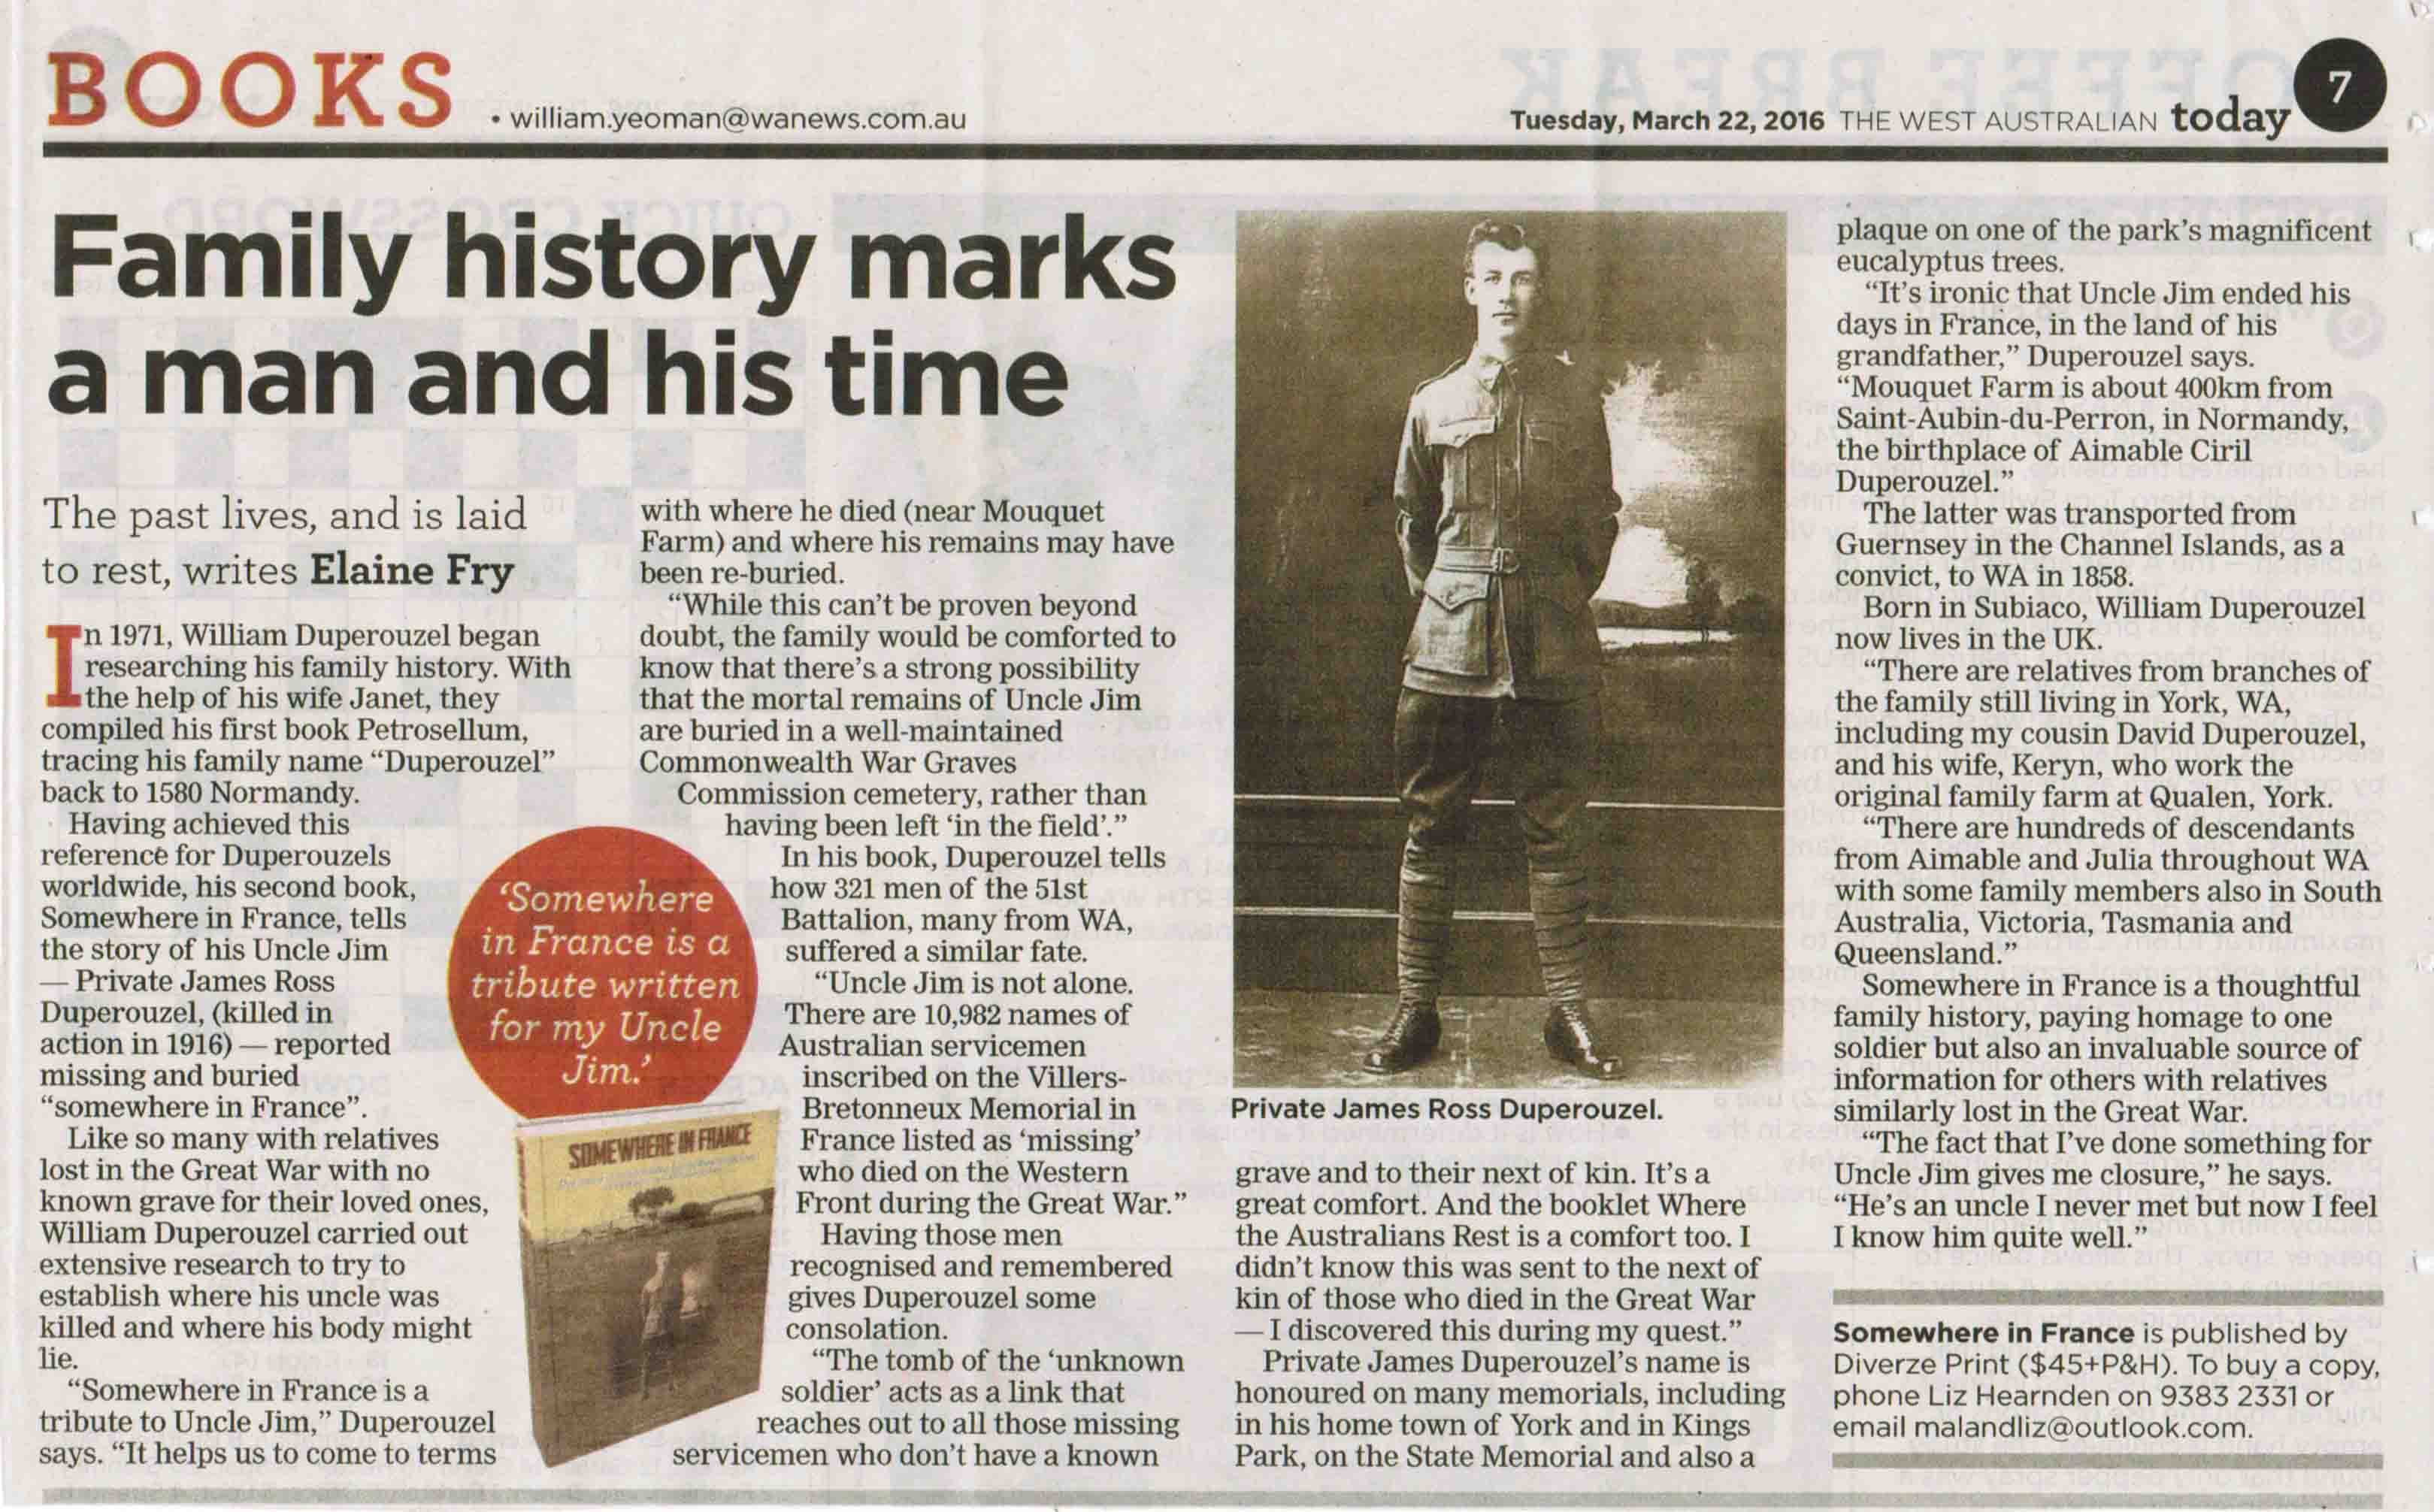 Reviews  William Duperouzel Somewhere In France Book Review Pte James Ross Duperouzel  The West  Australian Newspaper  March